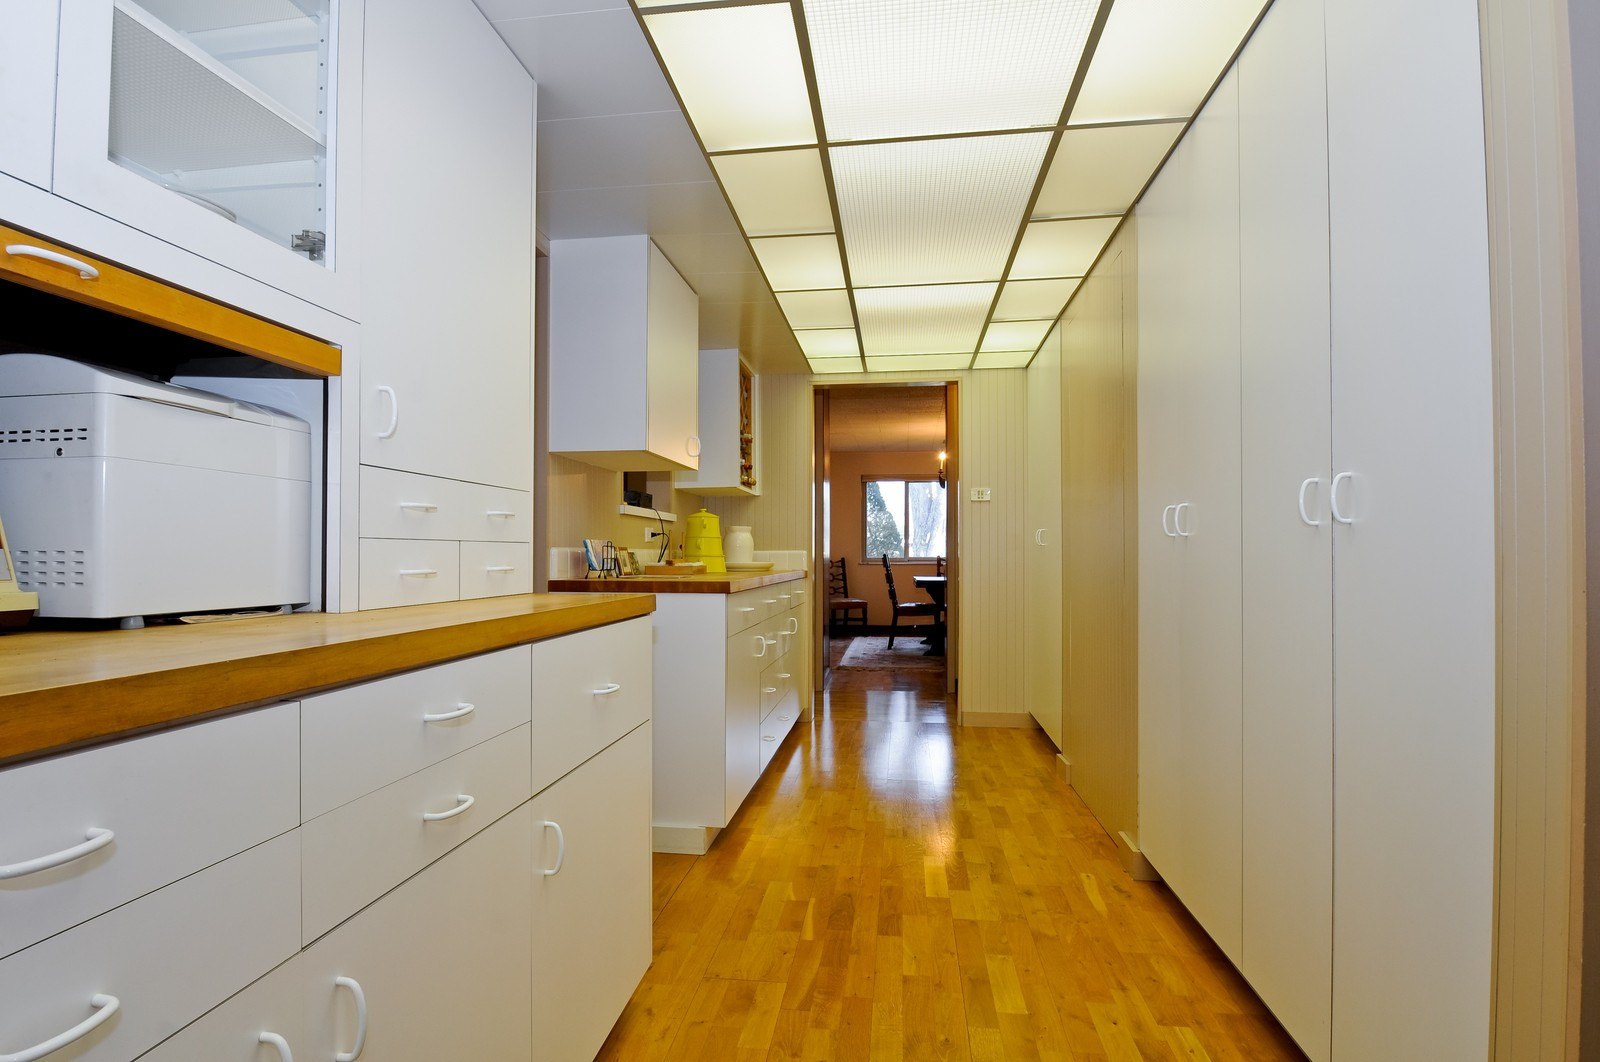 Real Estate Photography - 666 Birch Ln, Olympia Fields, IL, 60461 - Galley Kitchen View #2 More Cabinet Space